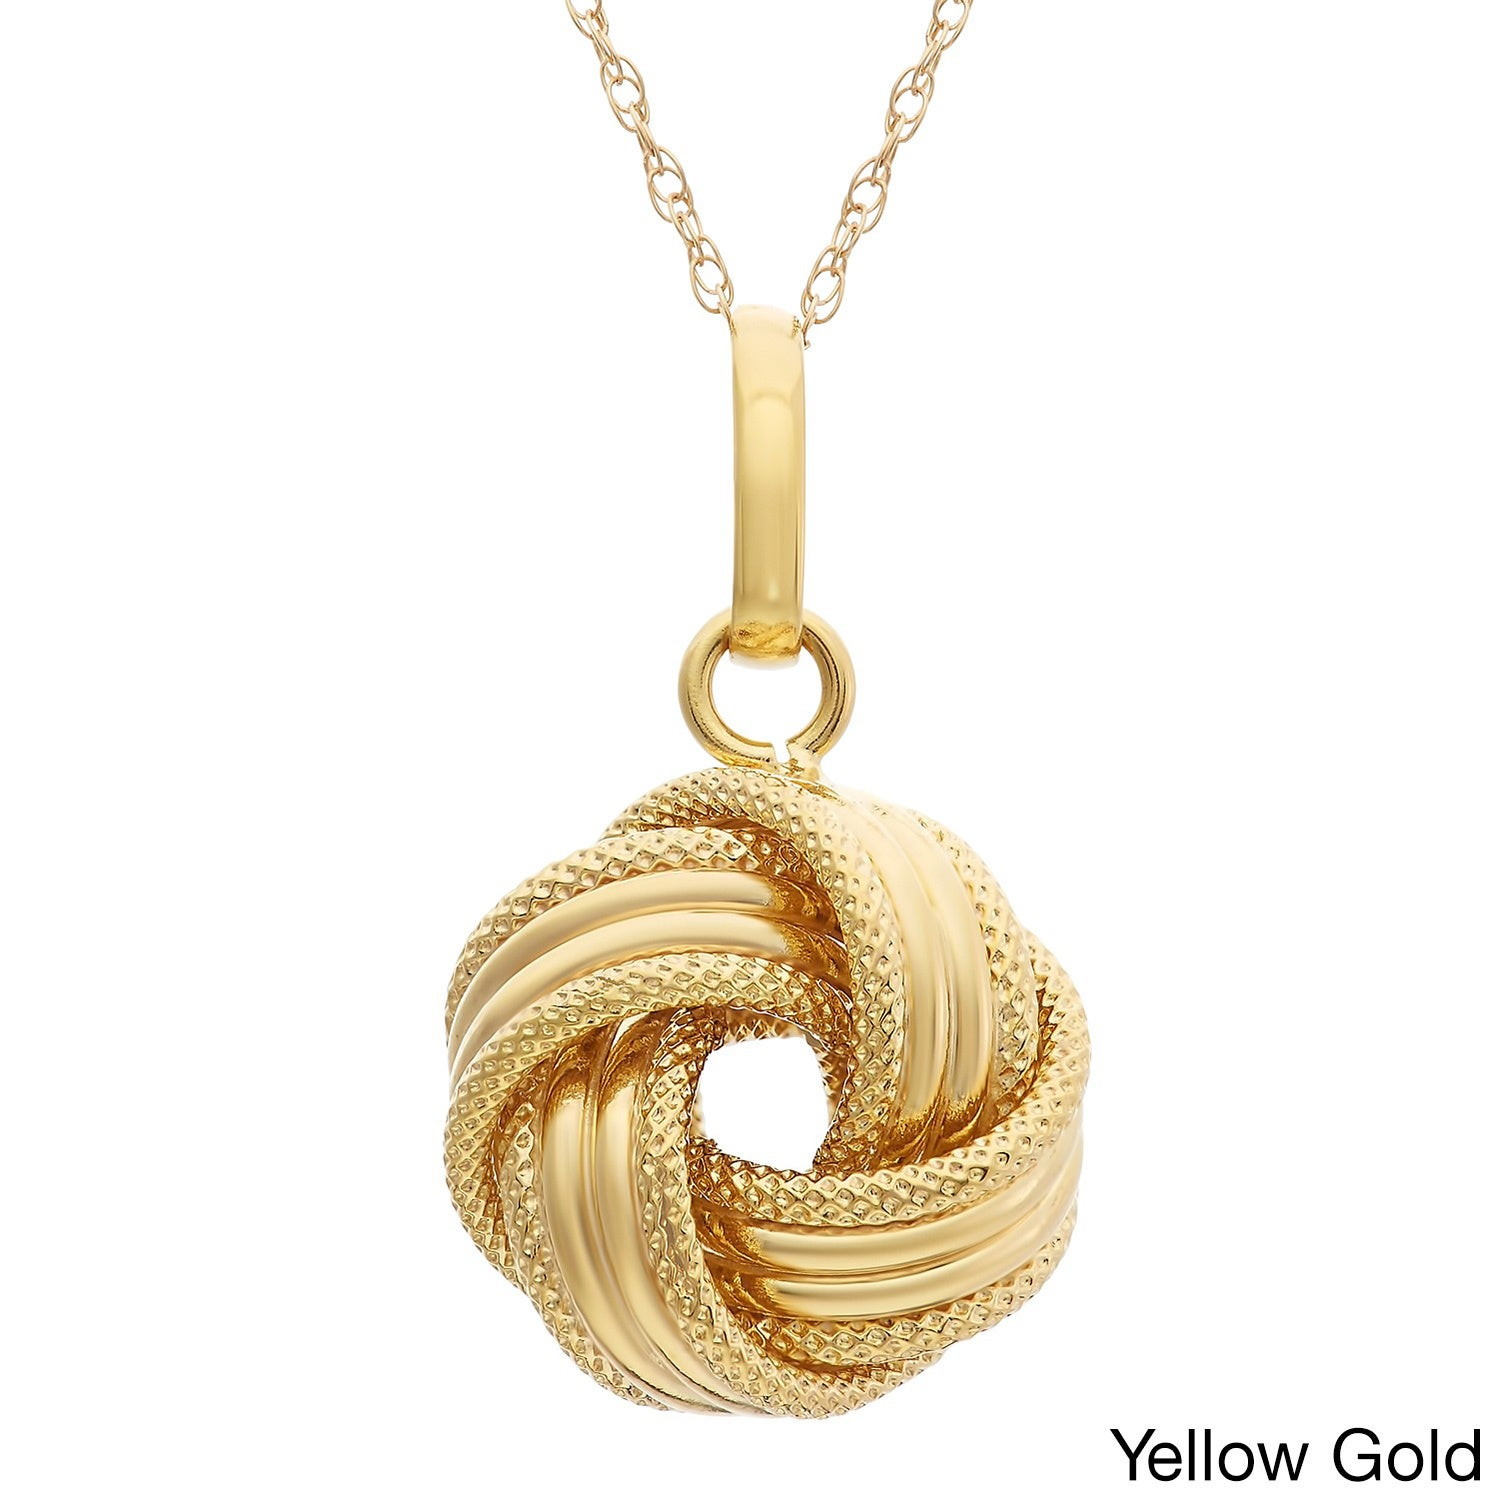 com pendant johnlewis knot main pdp yellow buyibb ibb necklace at online gold rsp